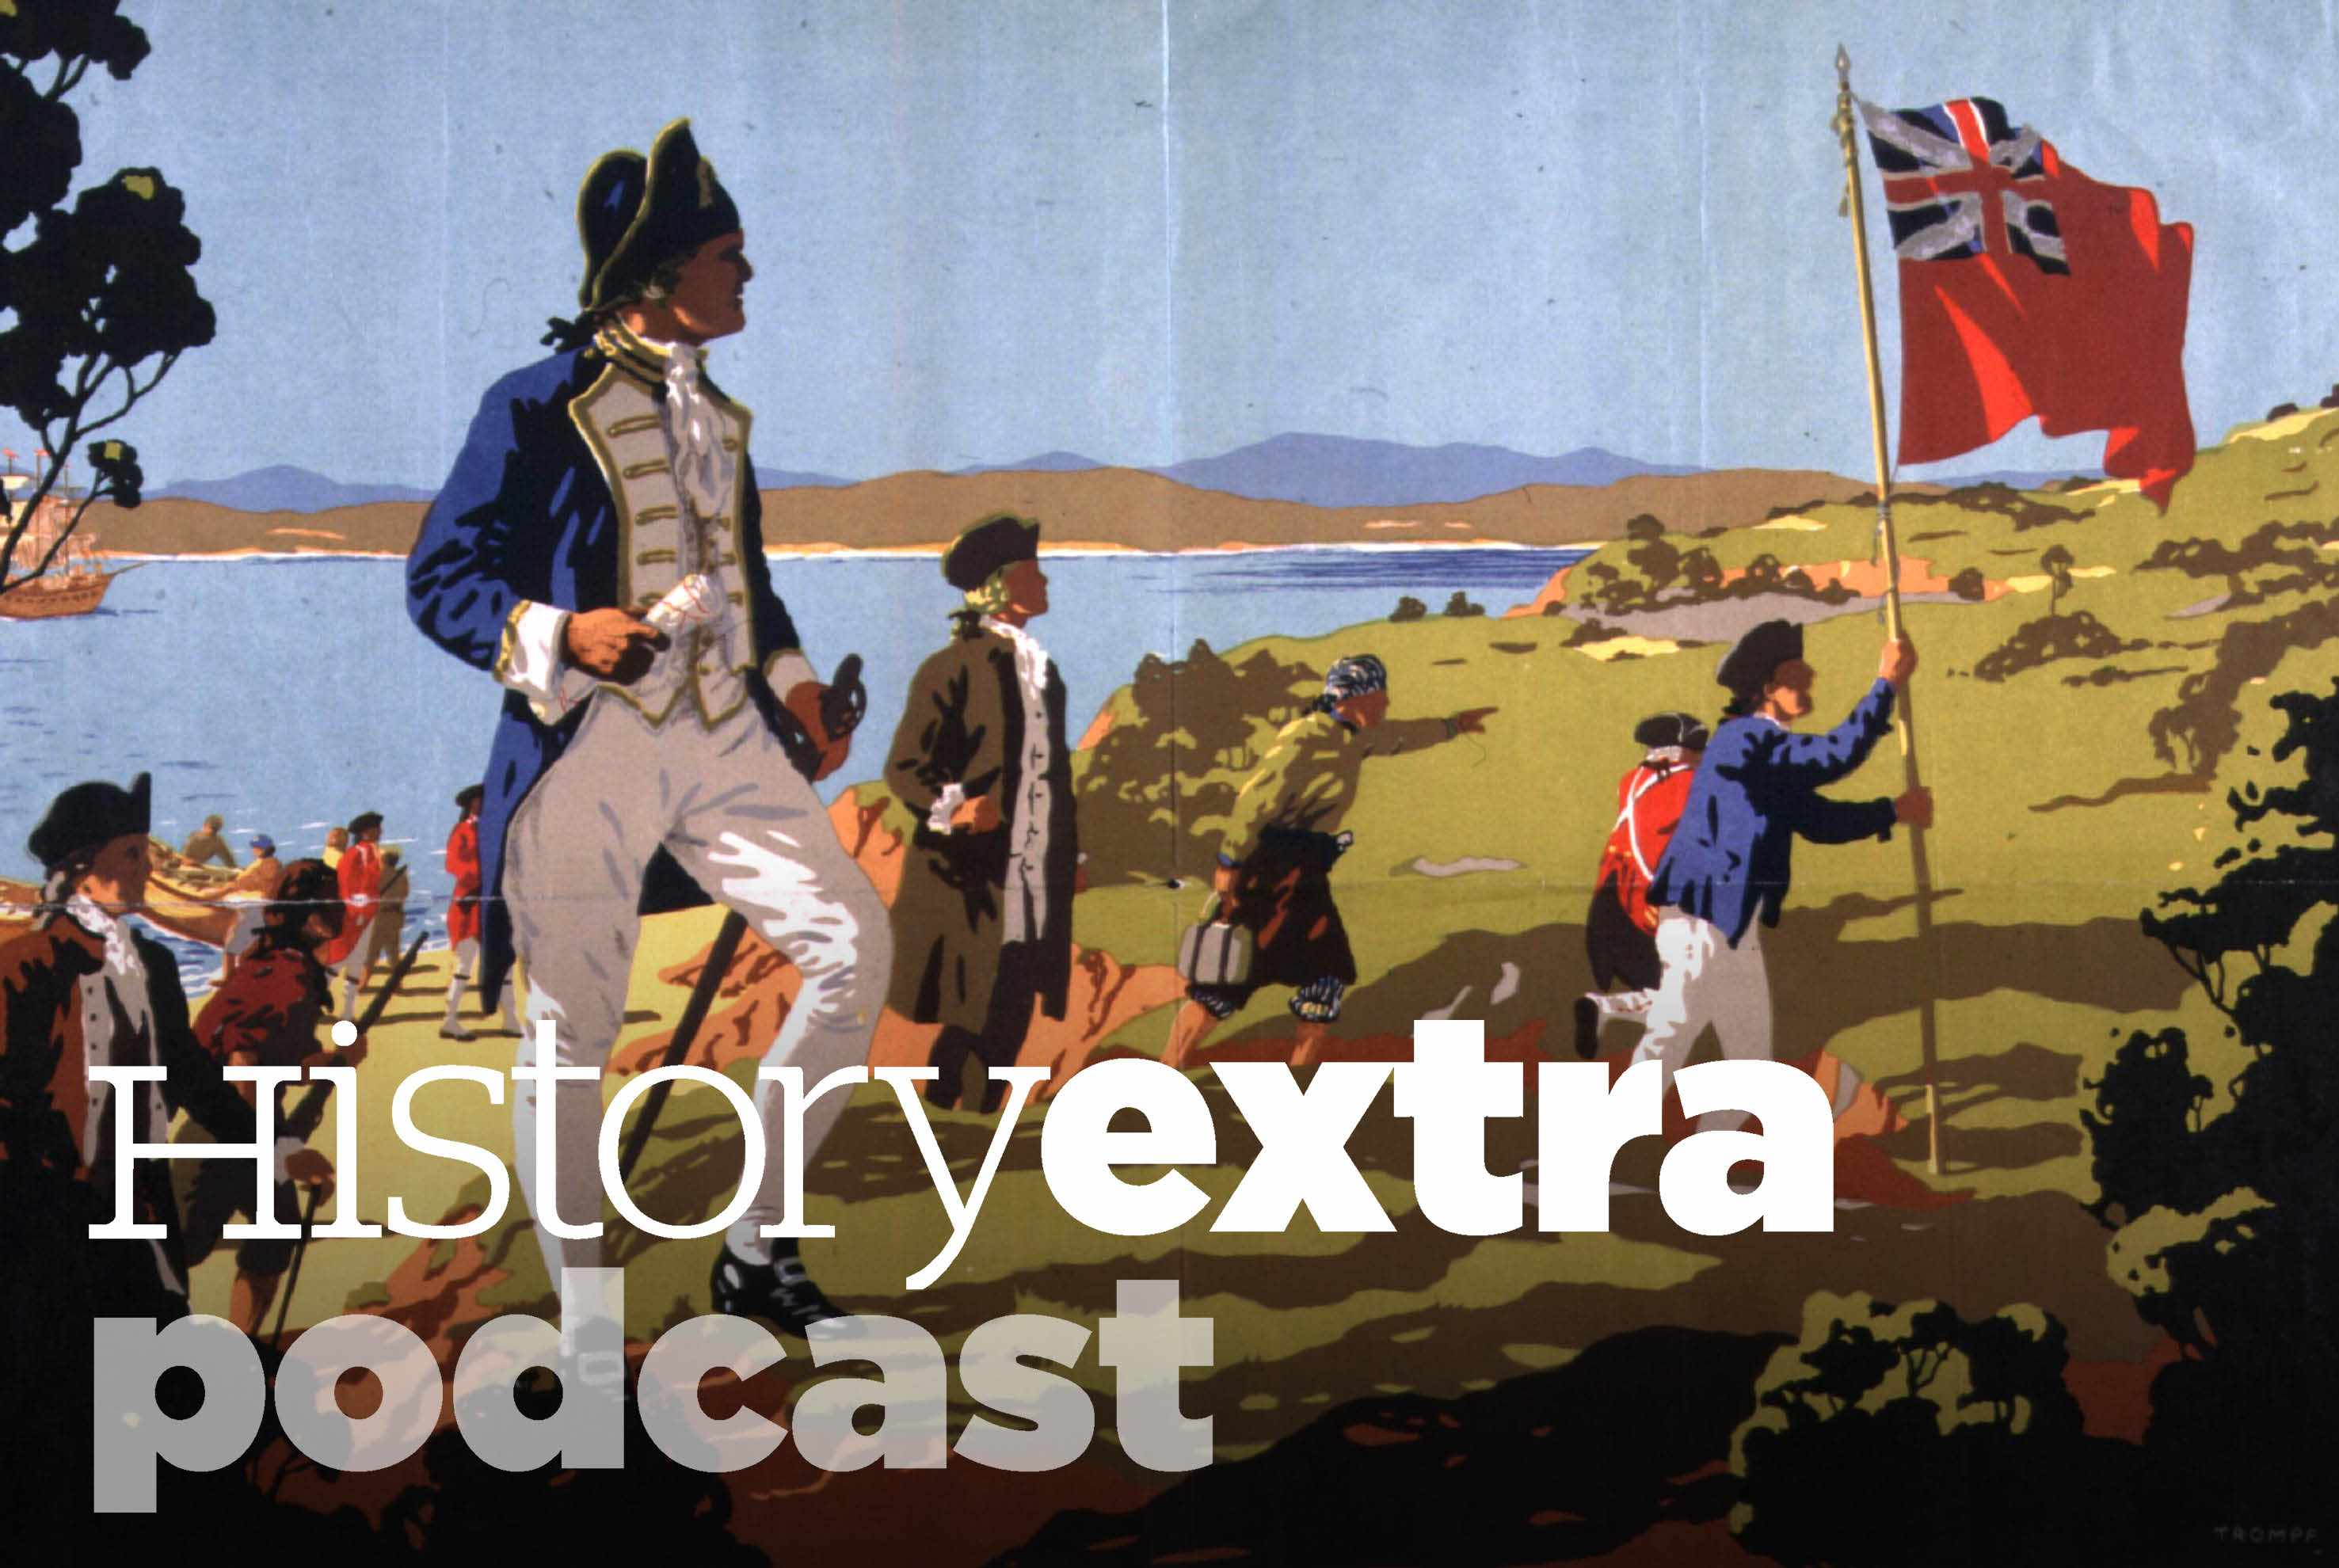 Captain Cook's Endeavour podcast